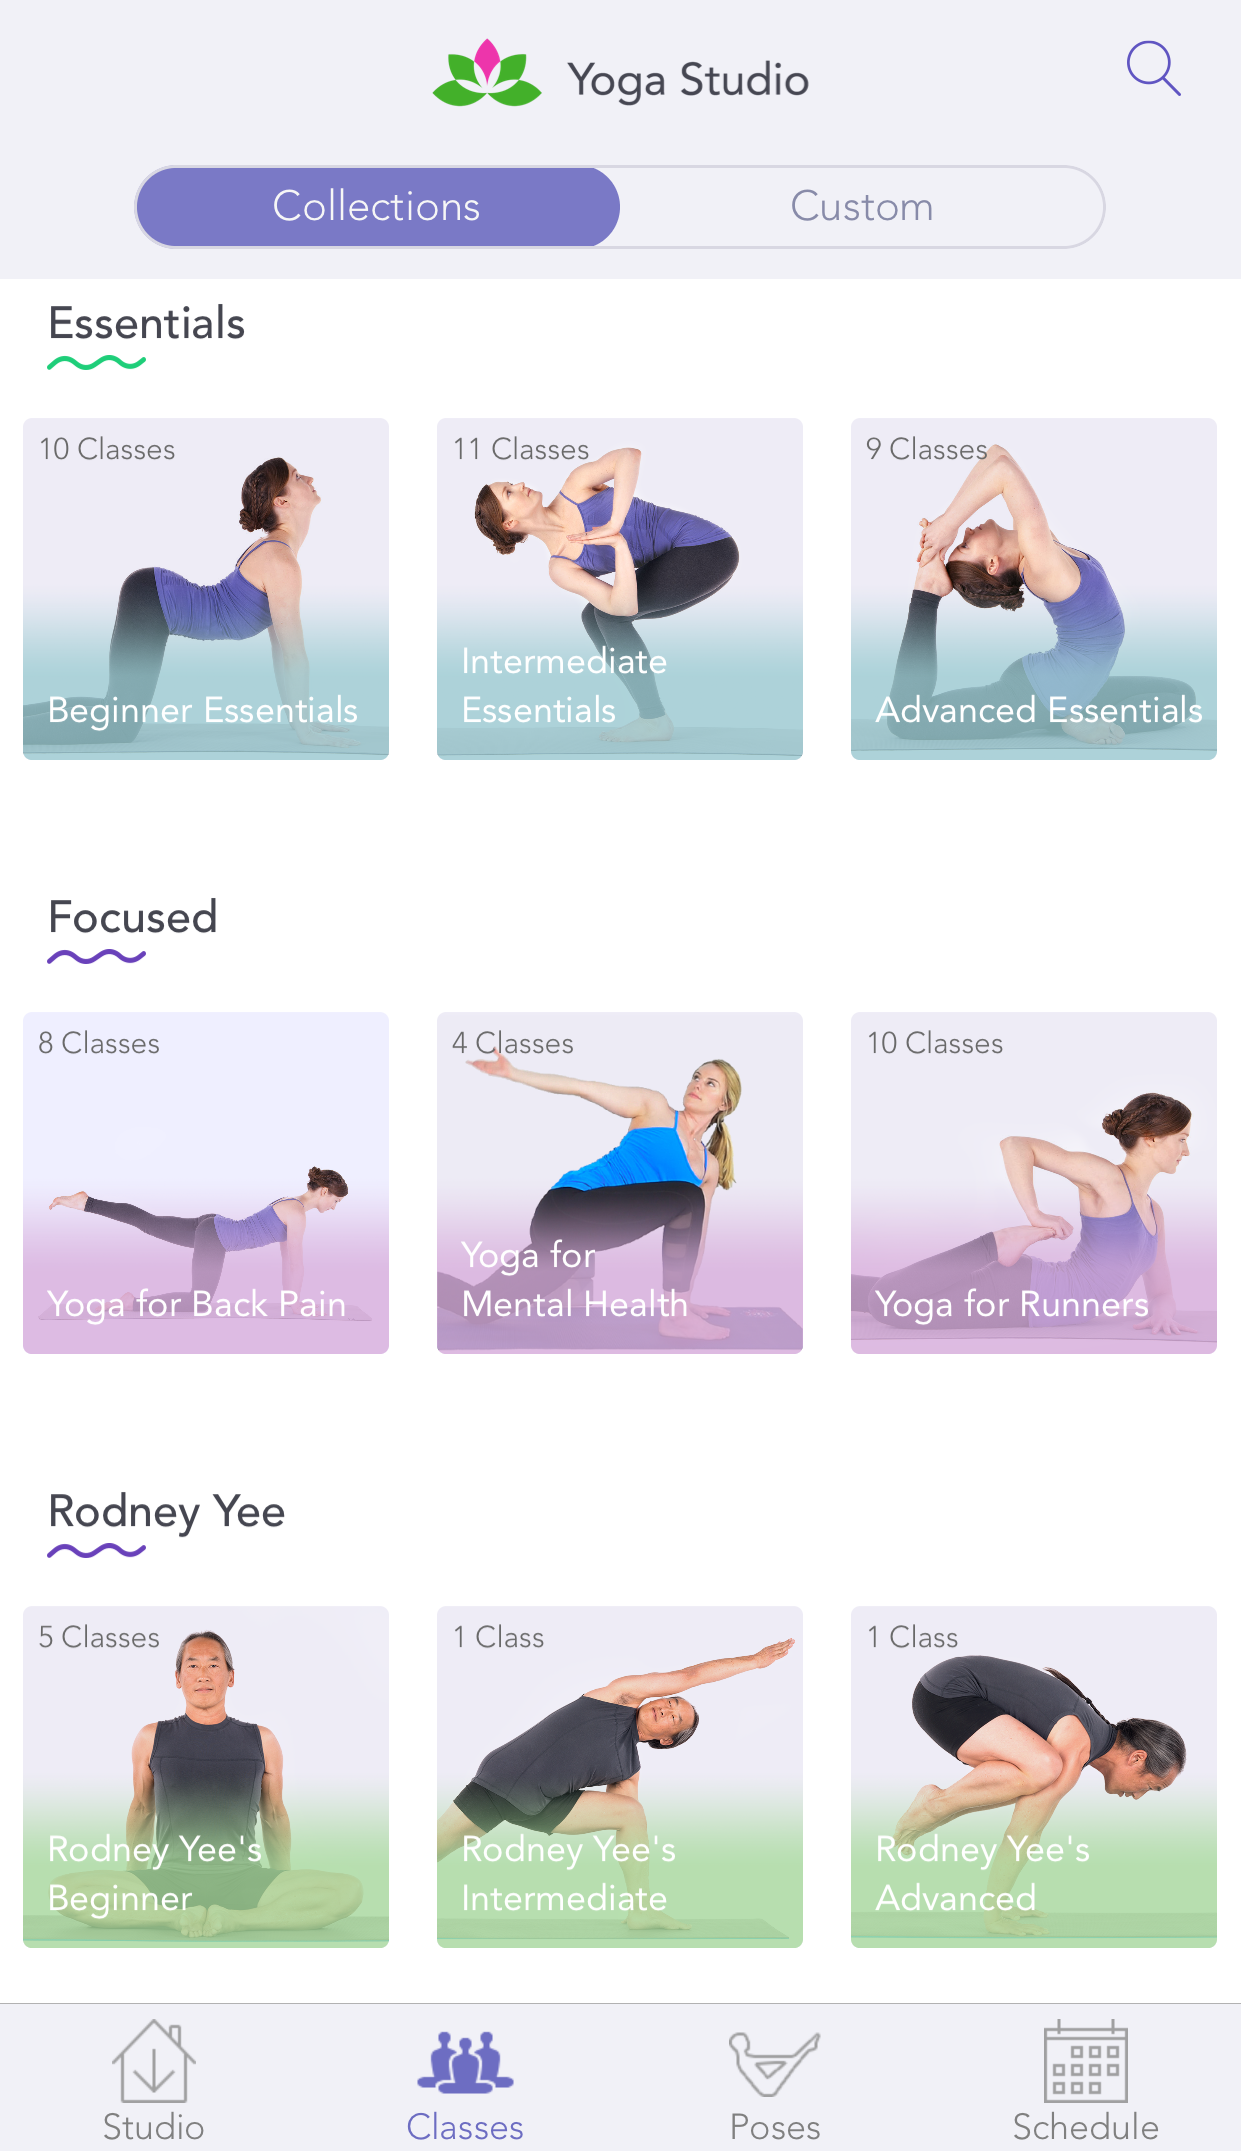 YogaStudio_Collections1.png